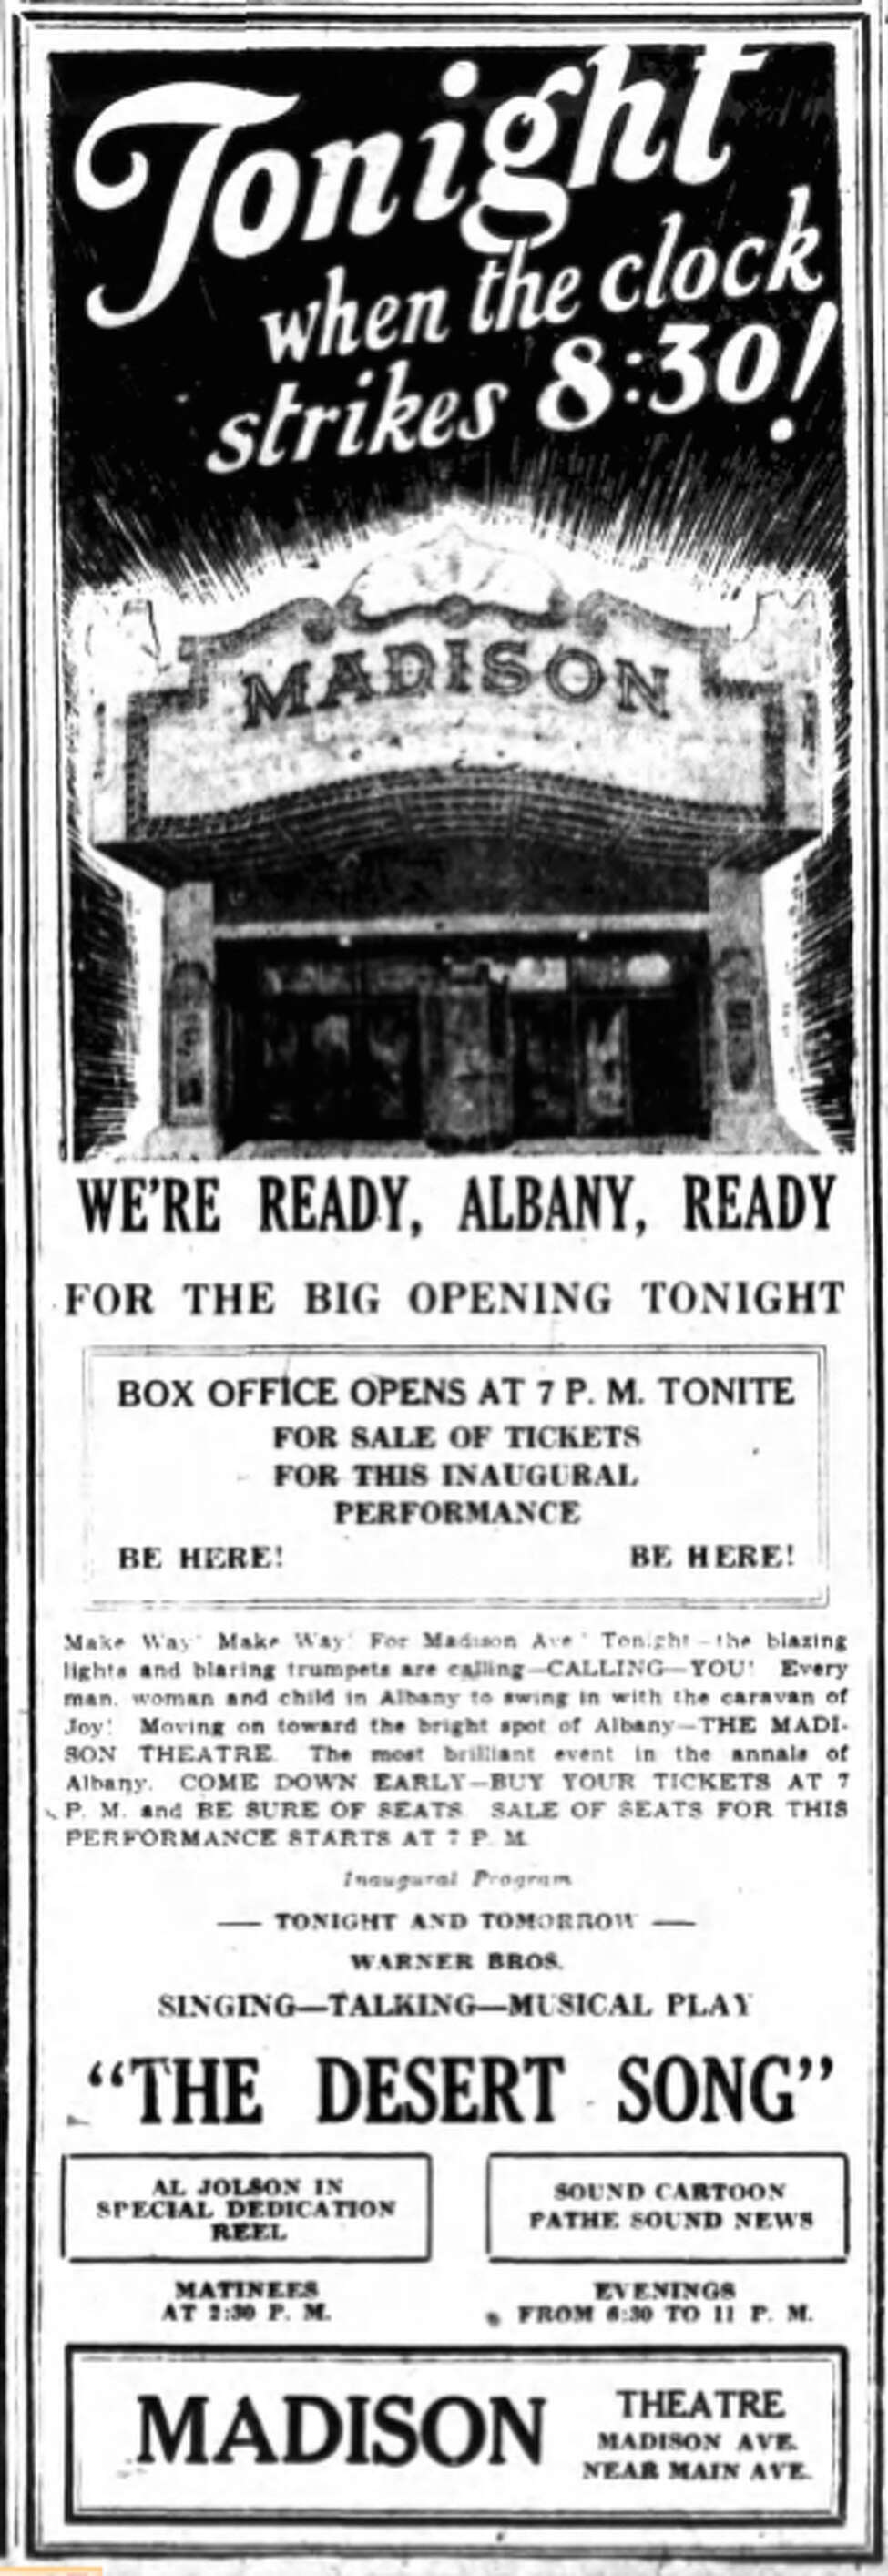 Advertisement for Madison Theatre's opening night. Ran in the Times-Union on May 29, 1929.